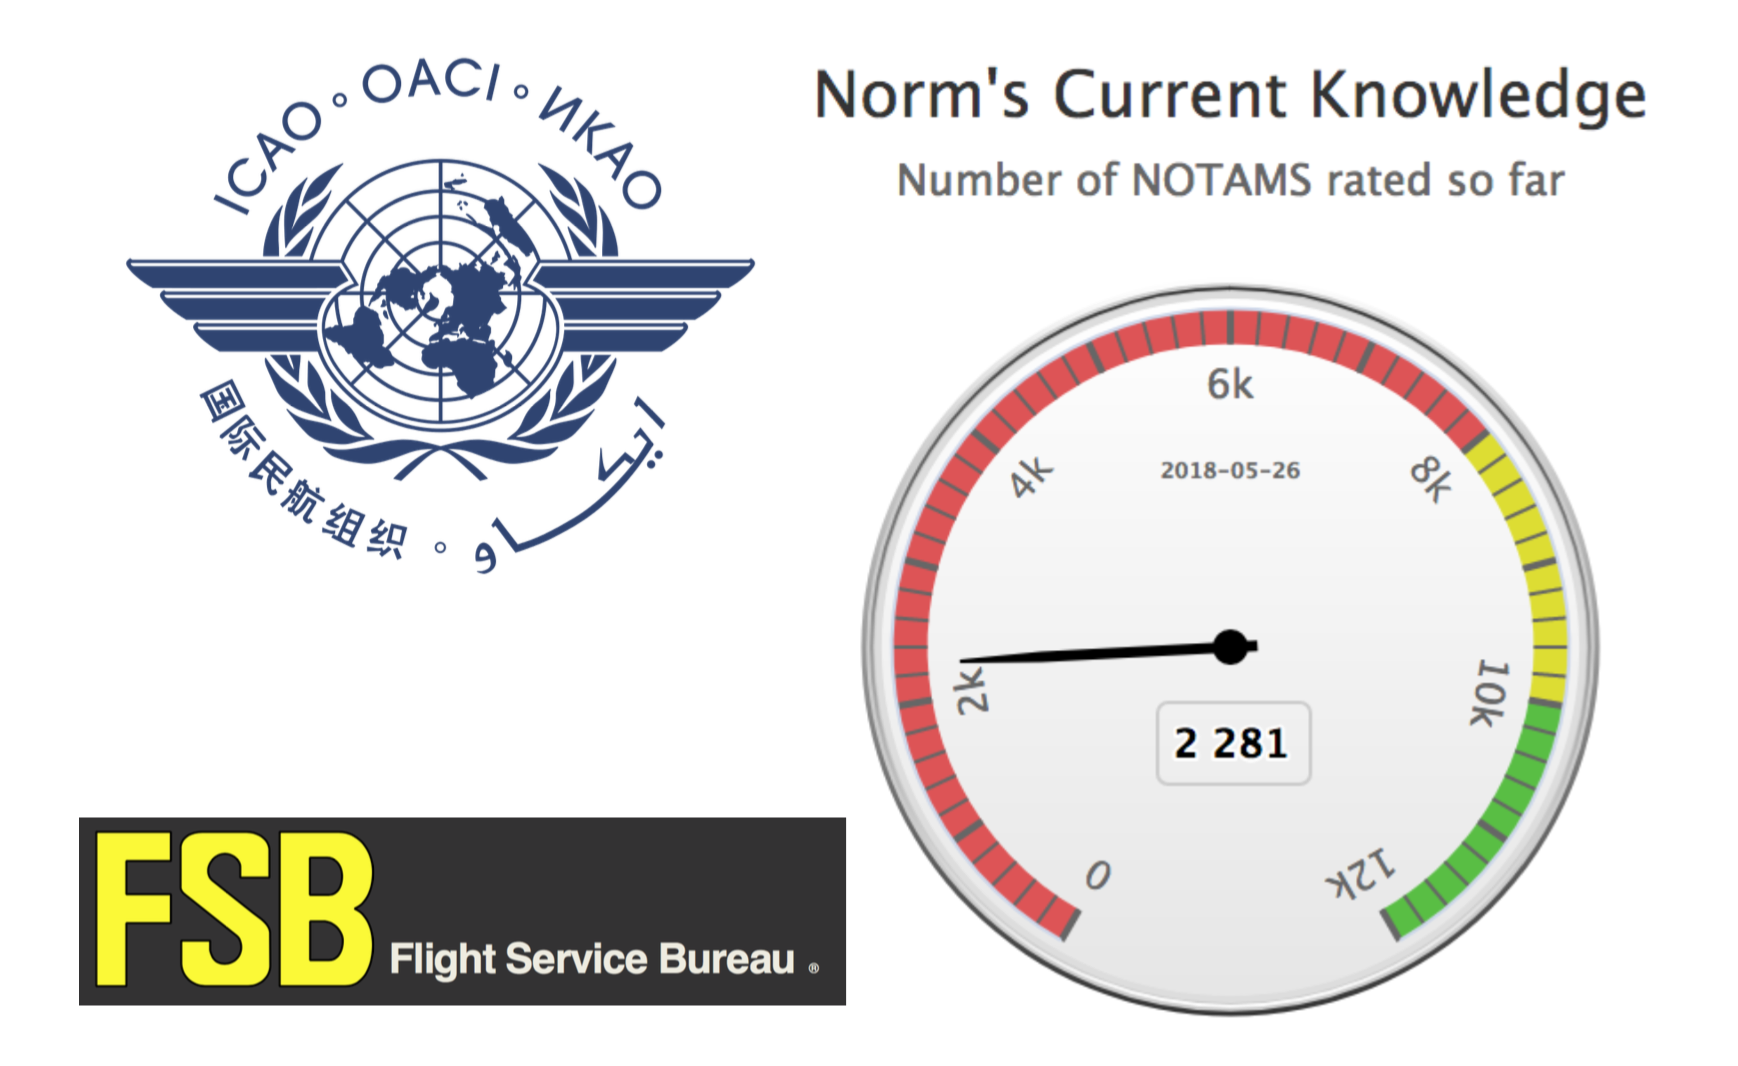 Have you met Norm? He's learning what a Notam is.